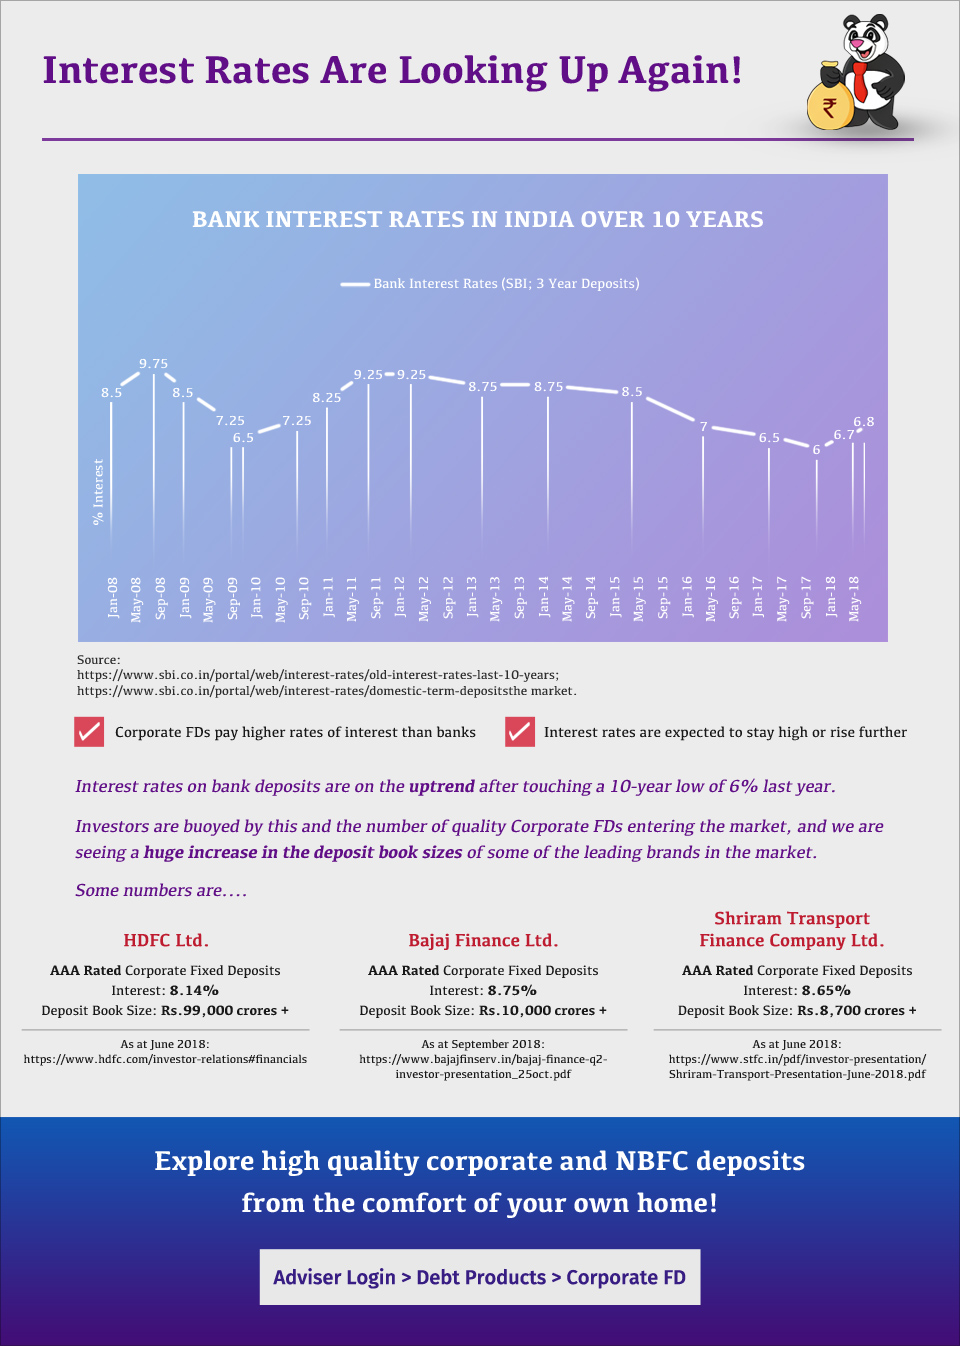 Bank Interest Rates In India Over 10 Years